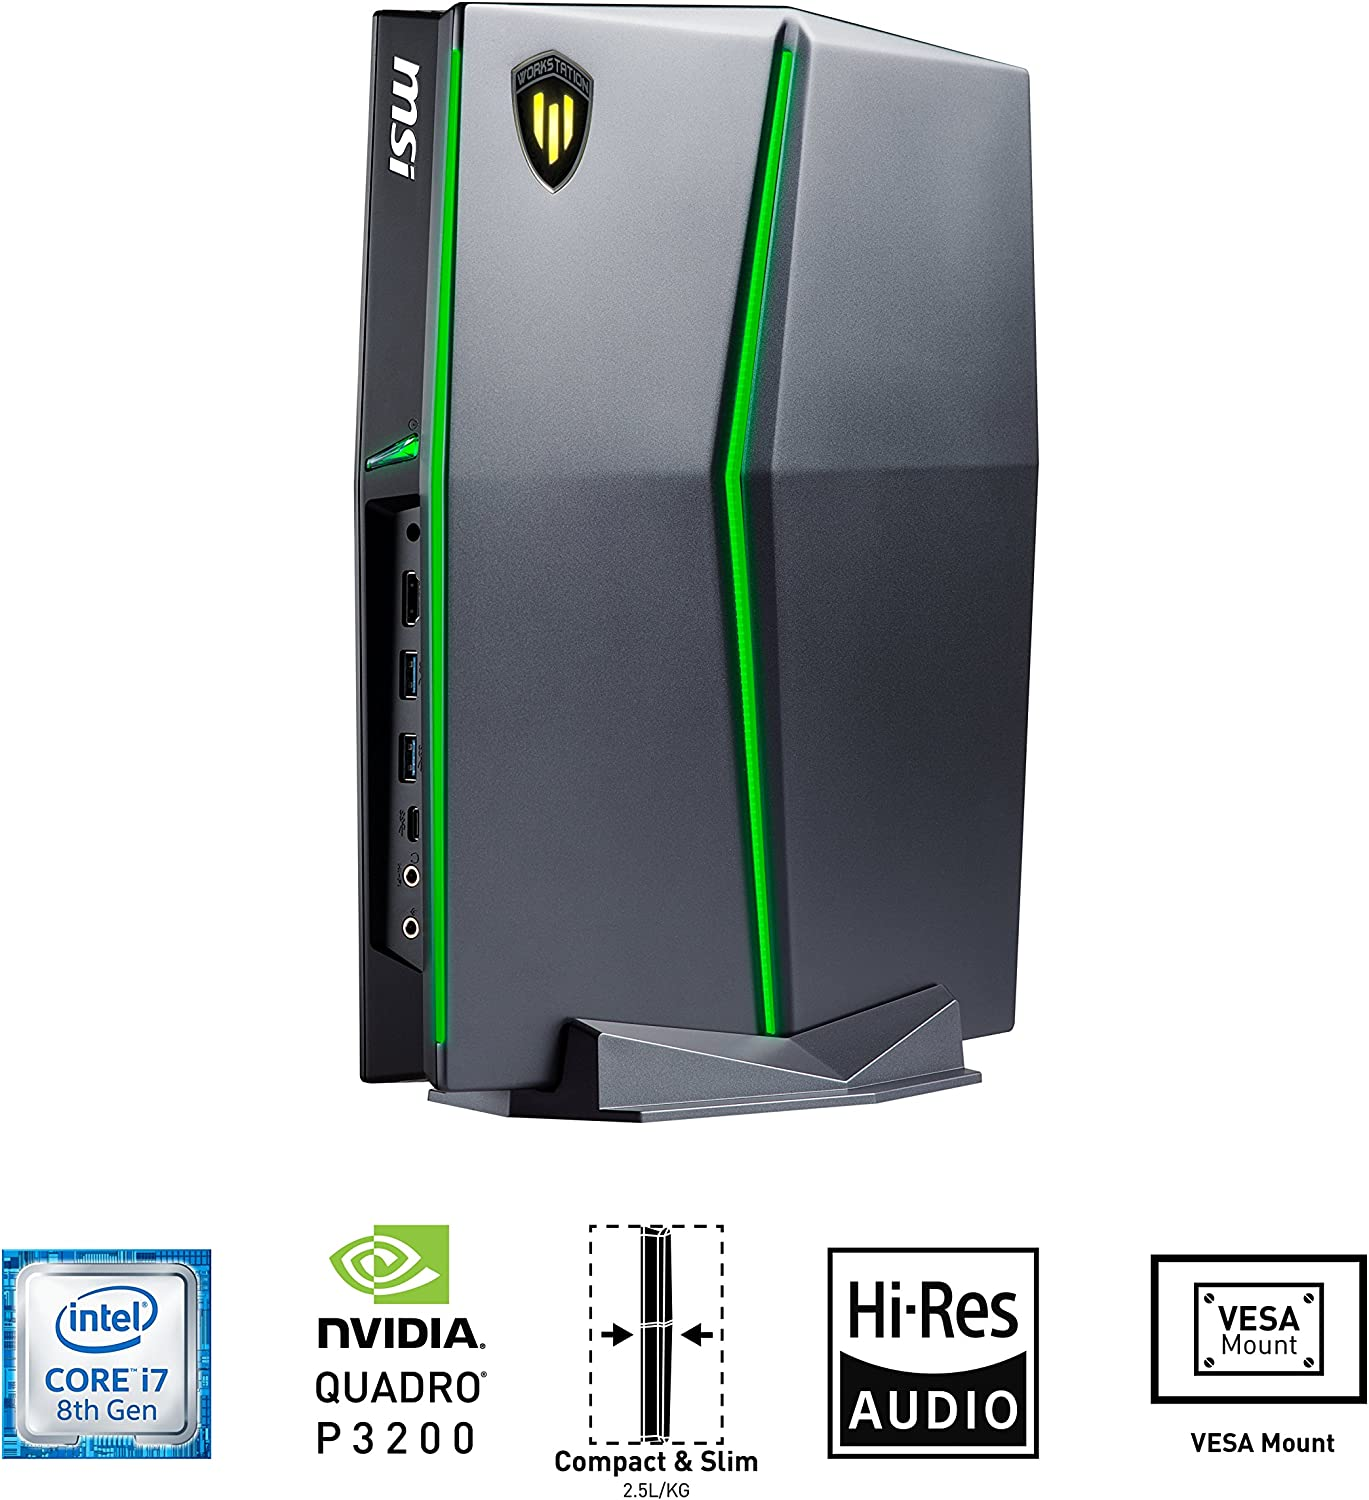 MSI Vortex W25 8SK-061 Slim and Powerful Workstation i7-8700 Quadro P3200 6GB GDDR5 16GB RAM 256GB SSD NVME